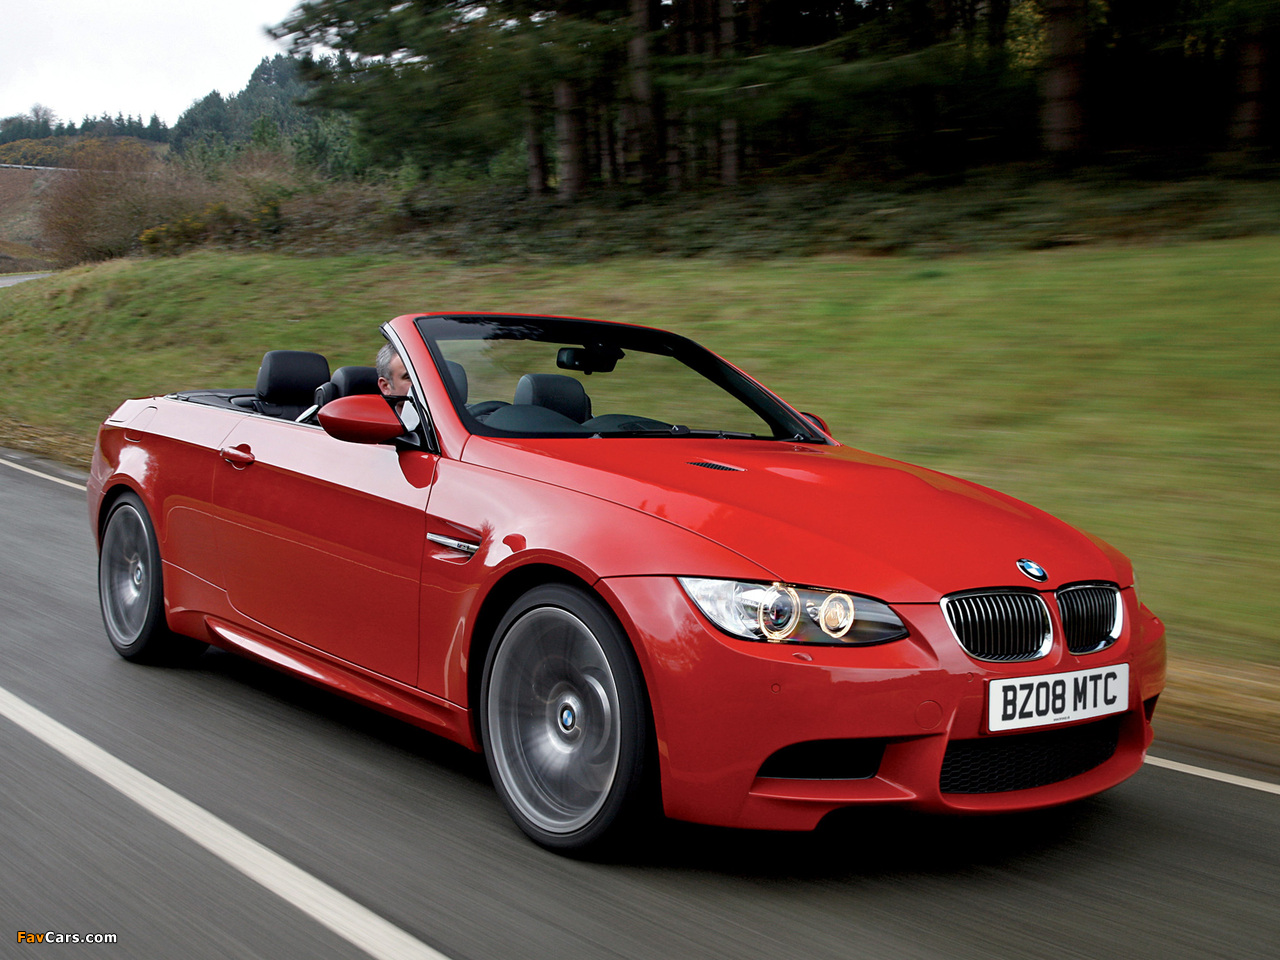 bmw m3 e93 with Bmw M3 Cabrio Uk Spec E93 2008 Wallpapers 178259 1280x960 on Vorsteiner Bmw M3 Cabrio E93 2011 Wallpapers 184189 1024x768 besides Showthread in addition Bmw M3 Cabrio Uk Spec E93 2008 Wallpapers 178259 1280x960 also Front Lower Lip Spoiler 2011 2013 Volvo S60 V60 besides Watch.